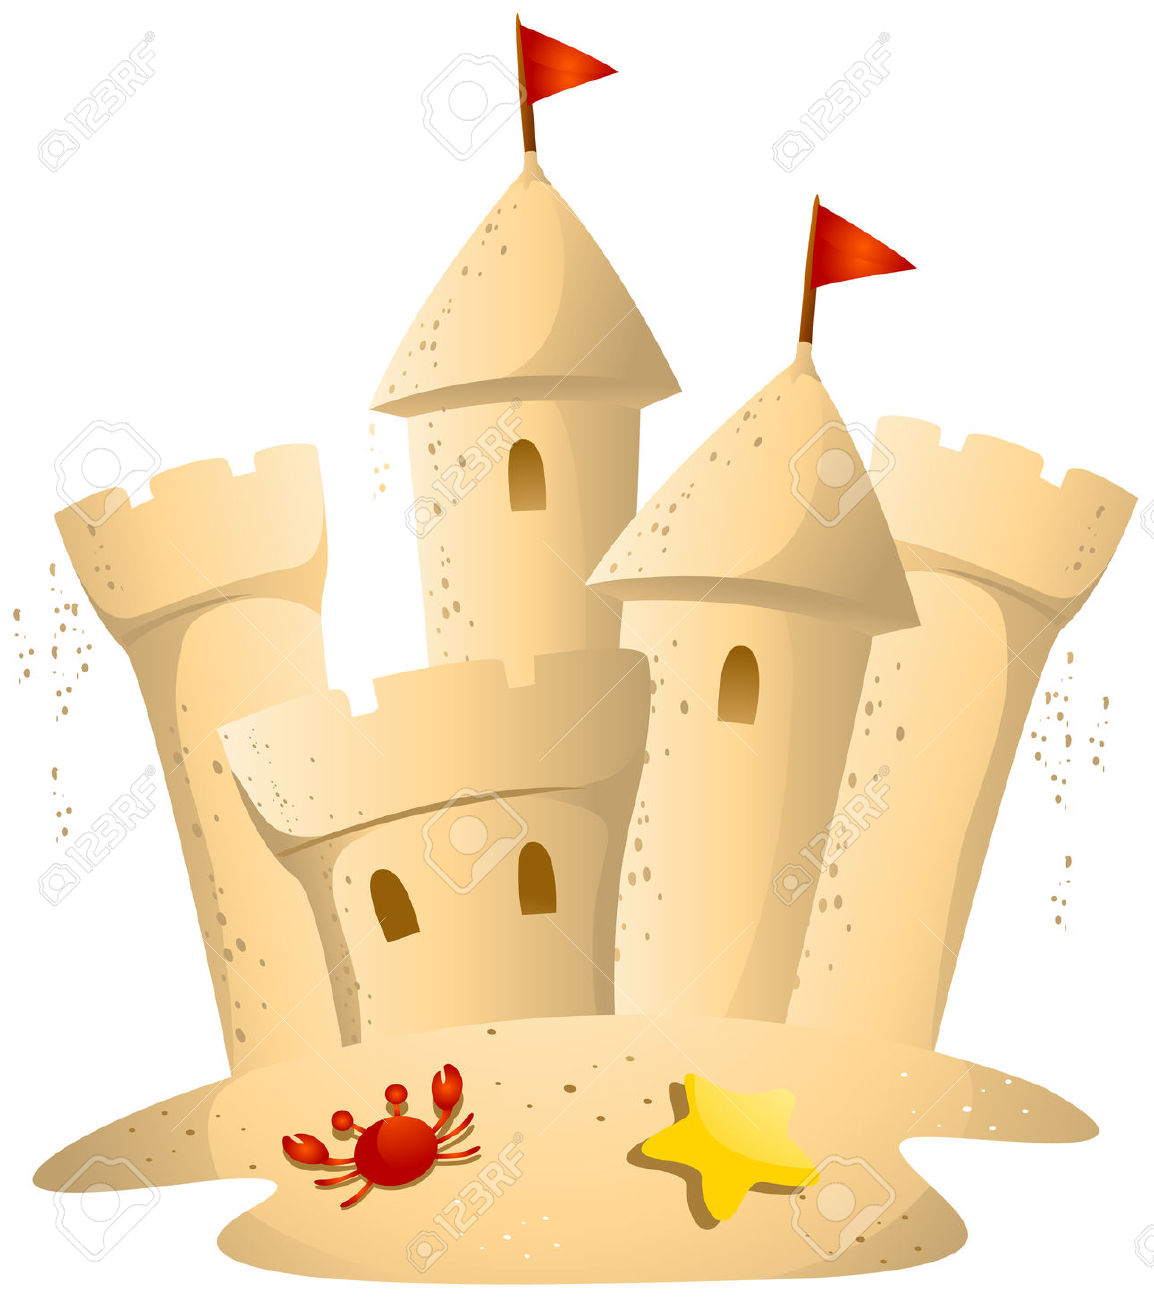 Sandcastle clipart #18, Download drawings